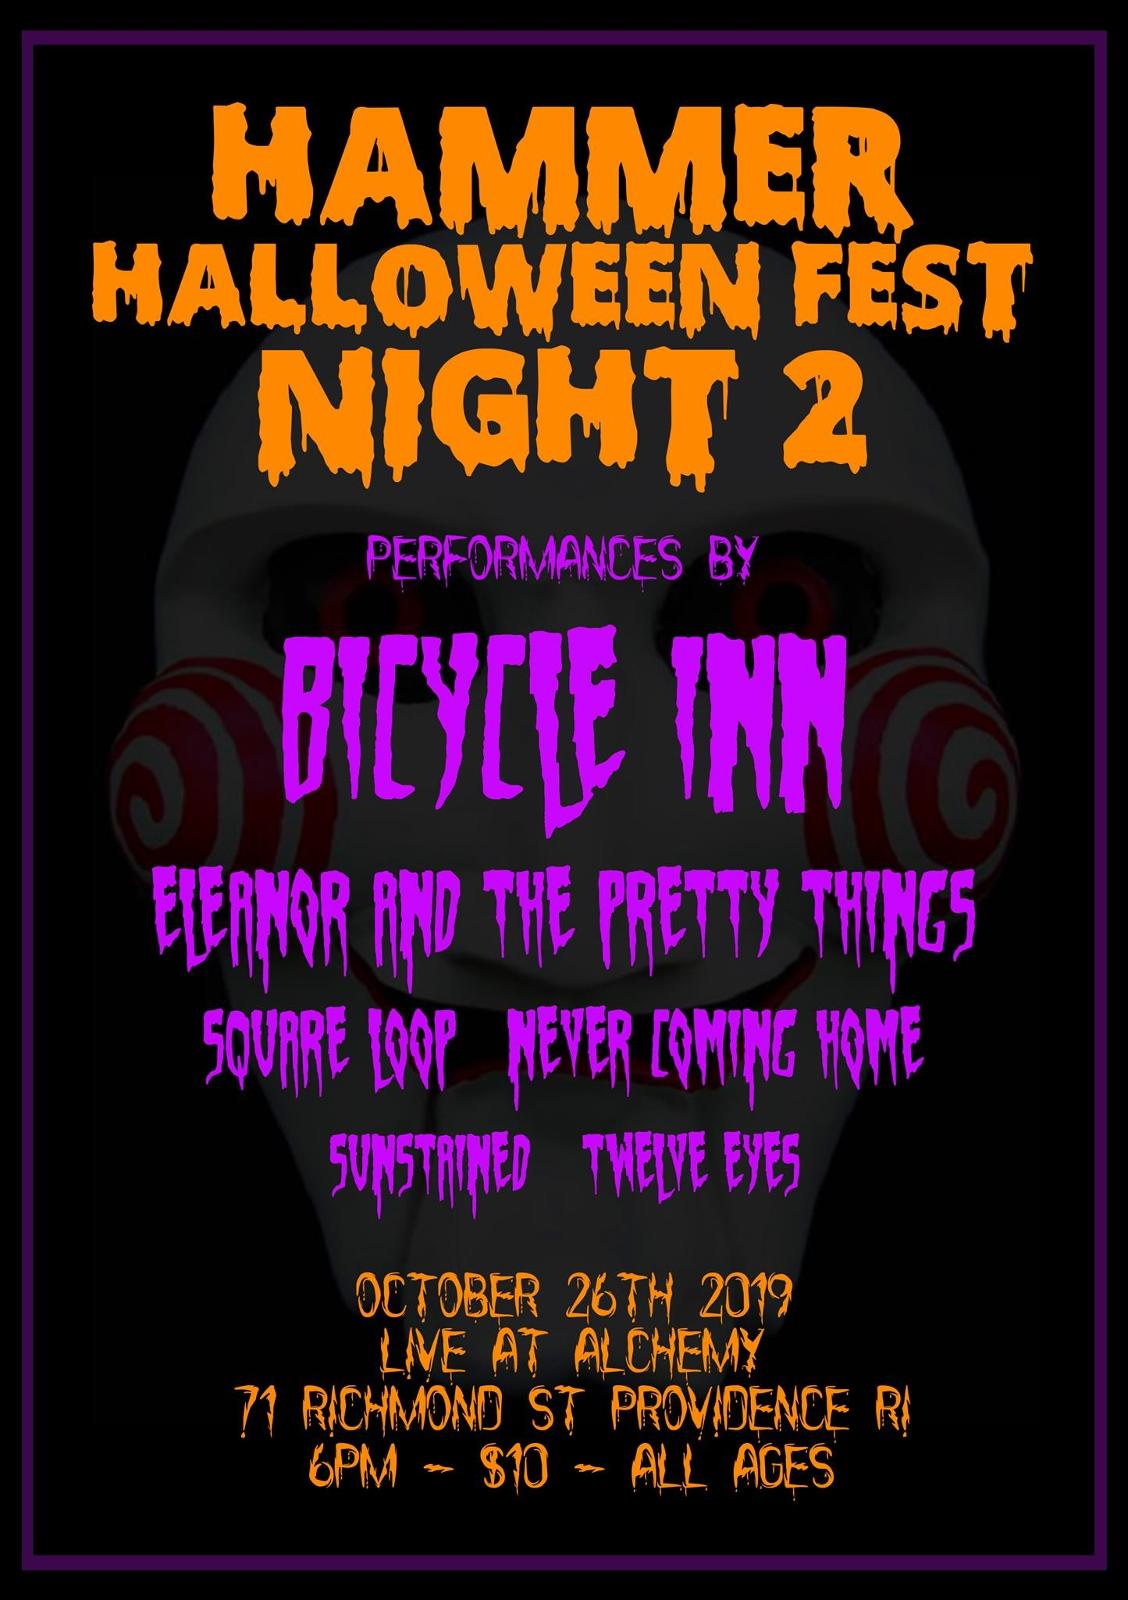 Bicycle Inn | Eleanor & The Pretty Things | Square Loop | Sustained | Twelve Eyes | Never Coning Home